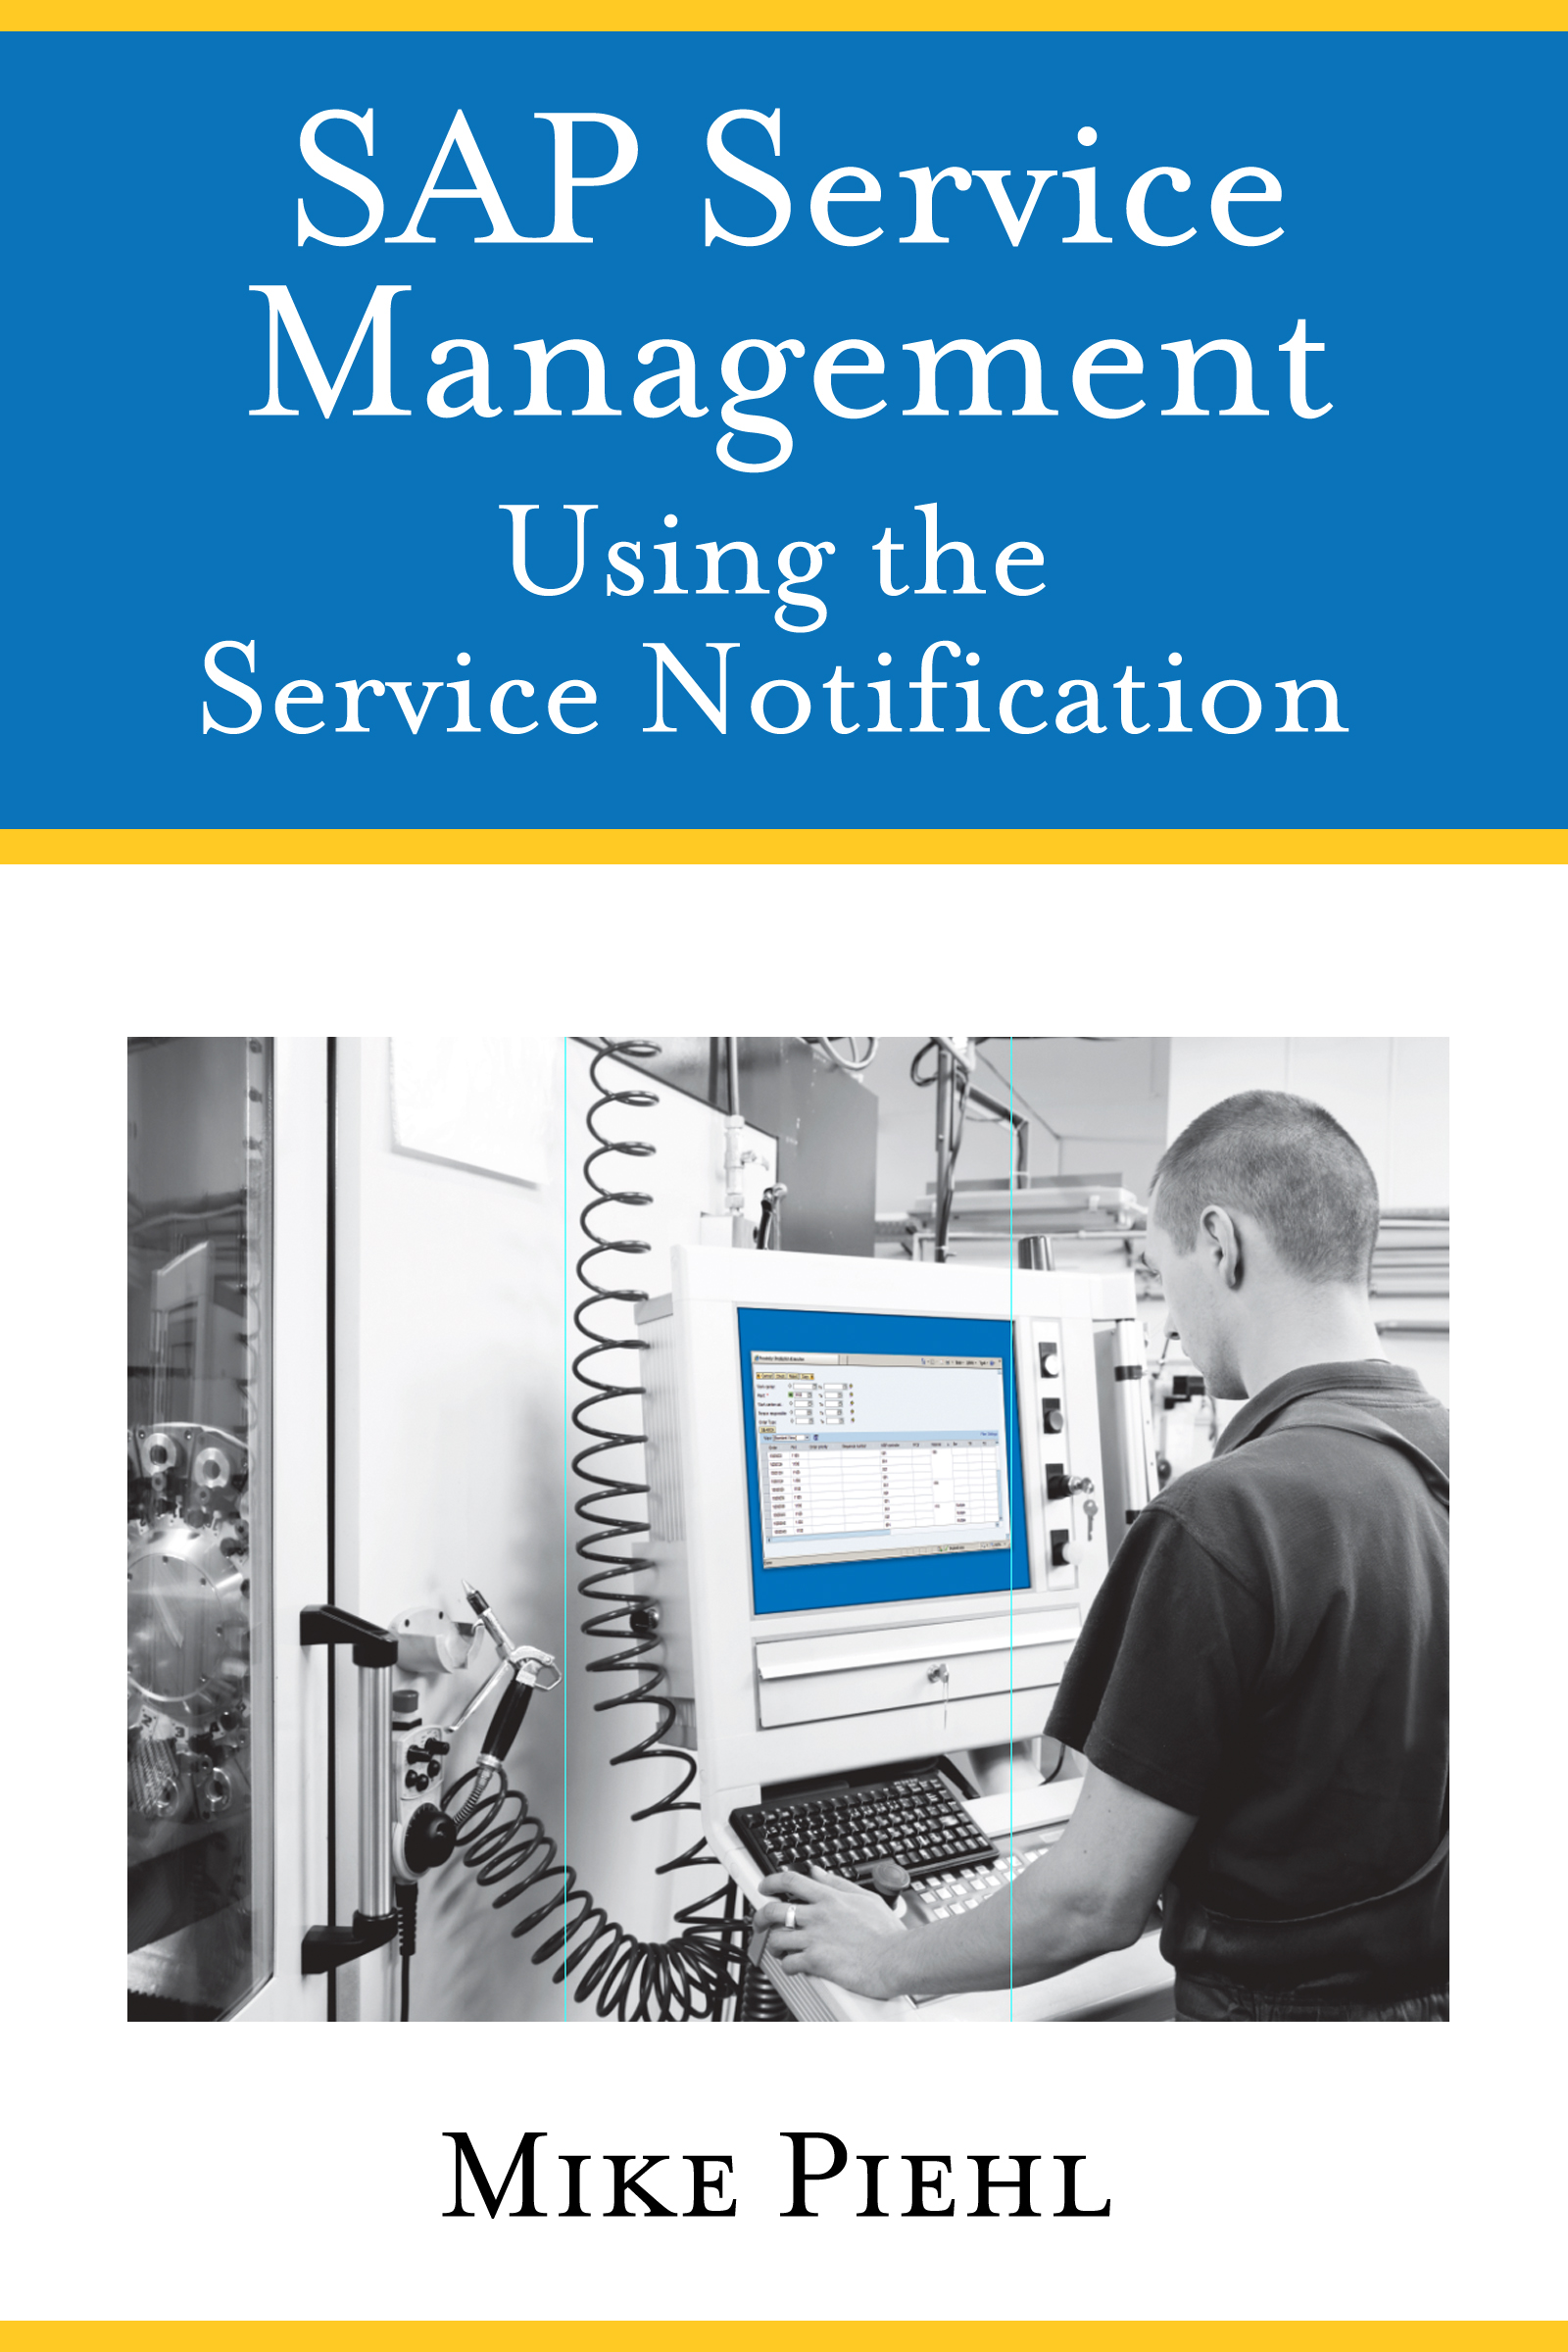 Using the Service Notification